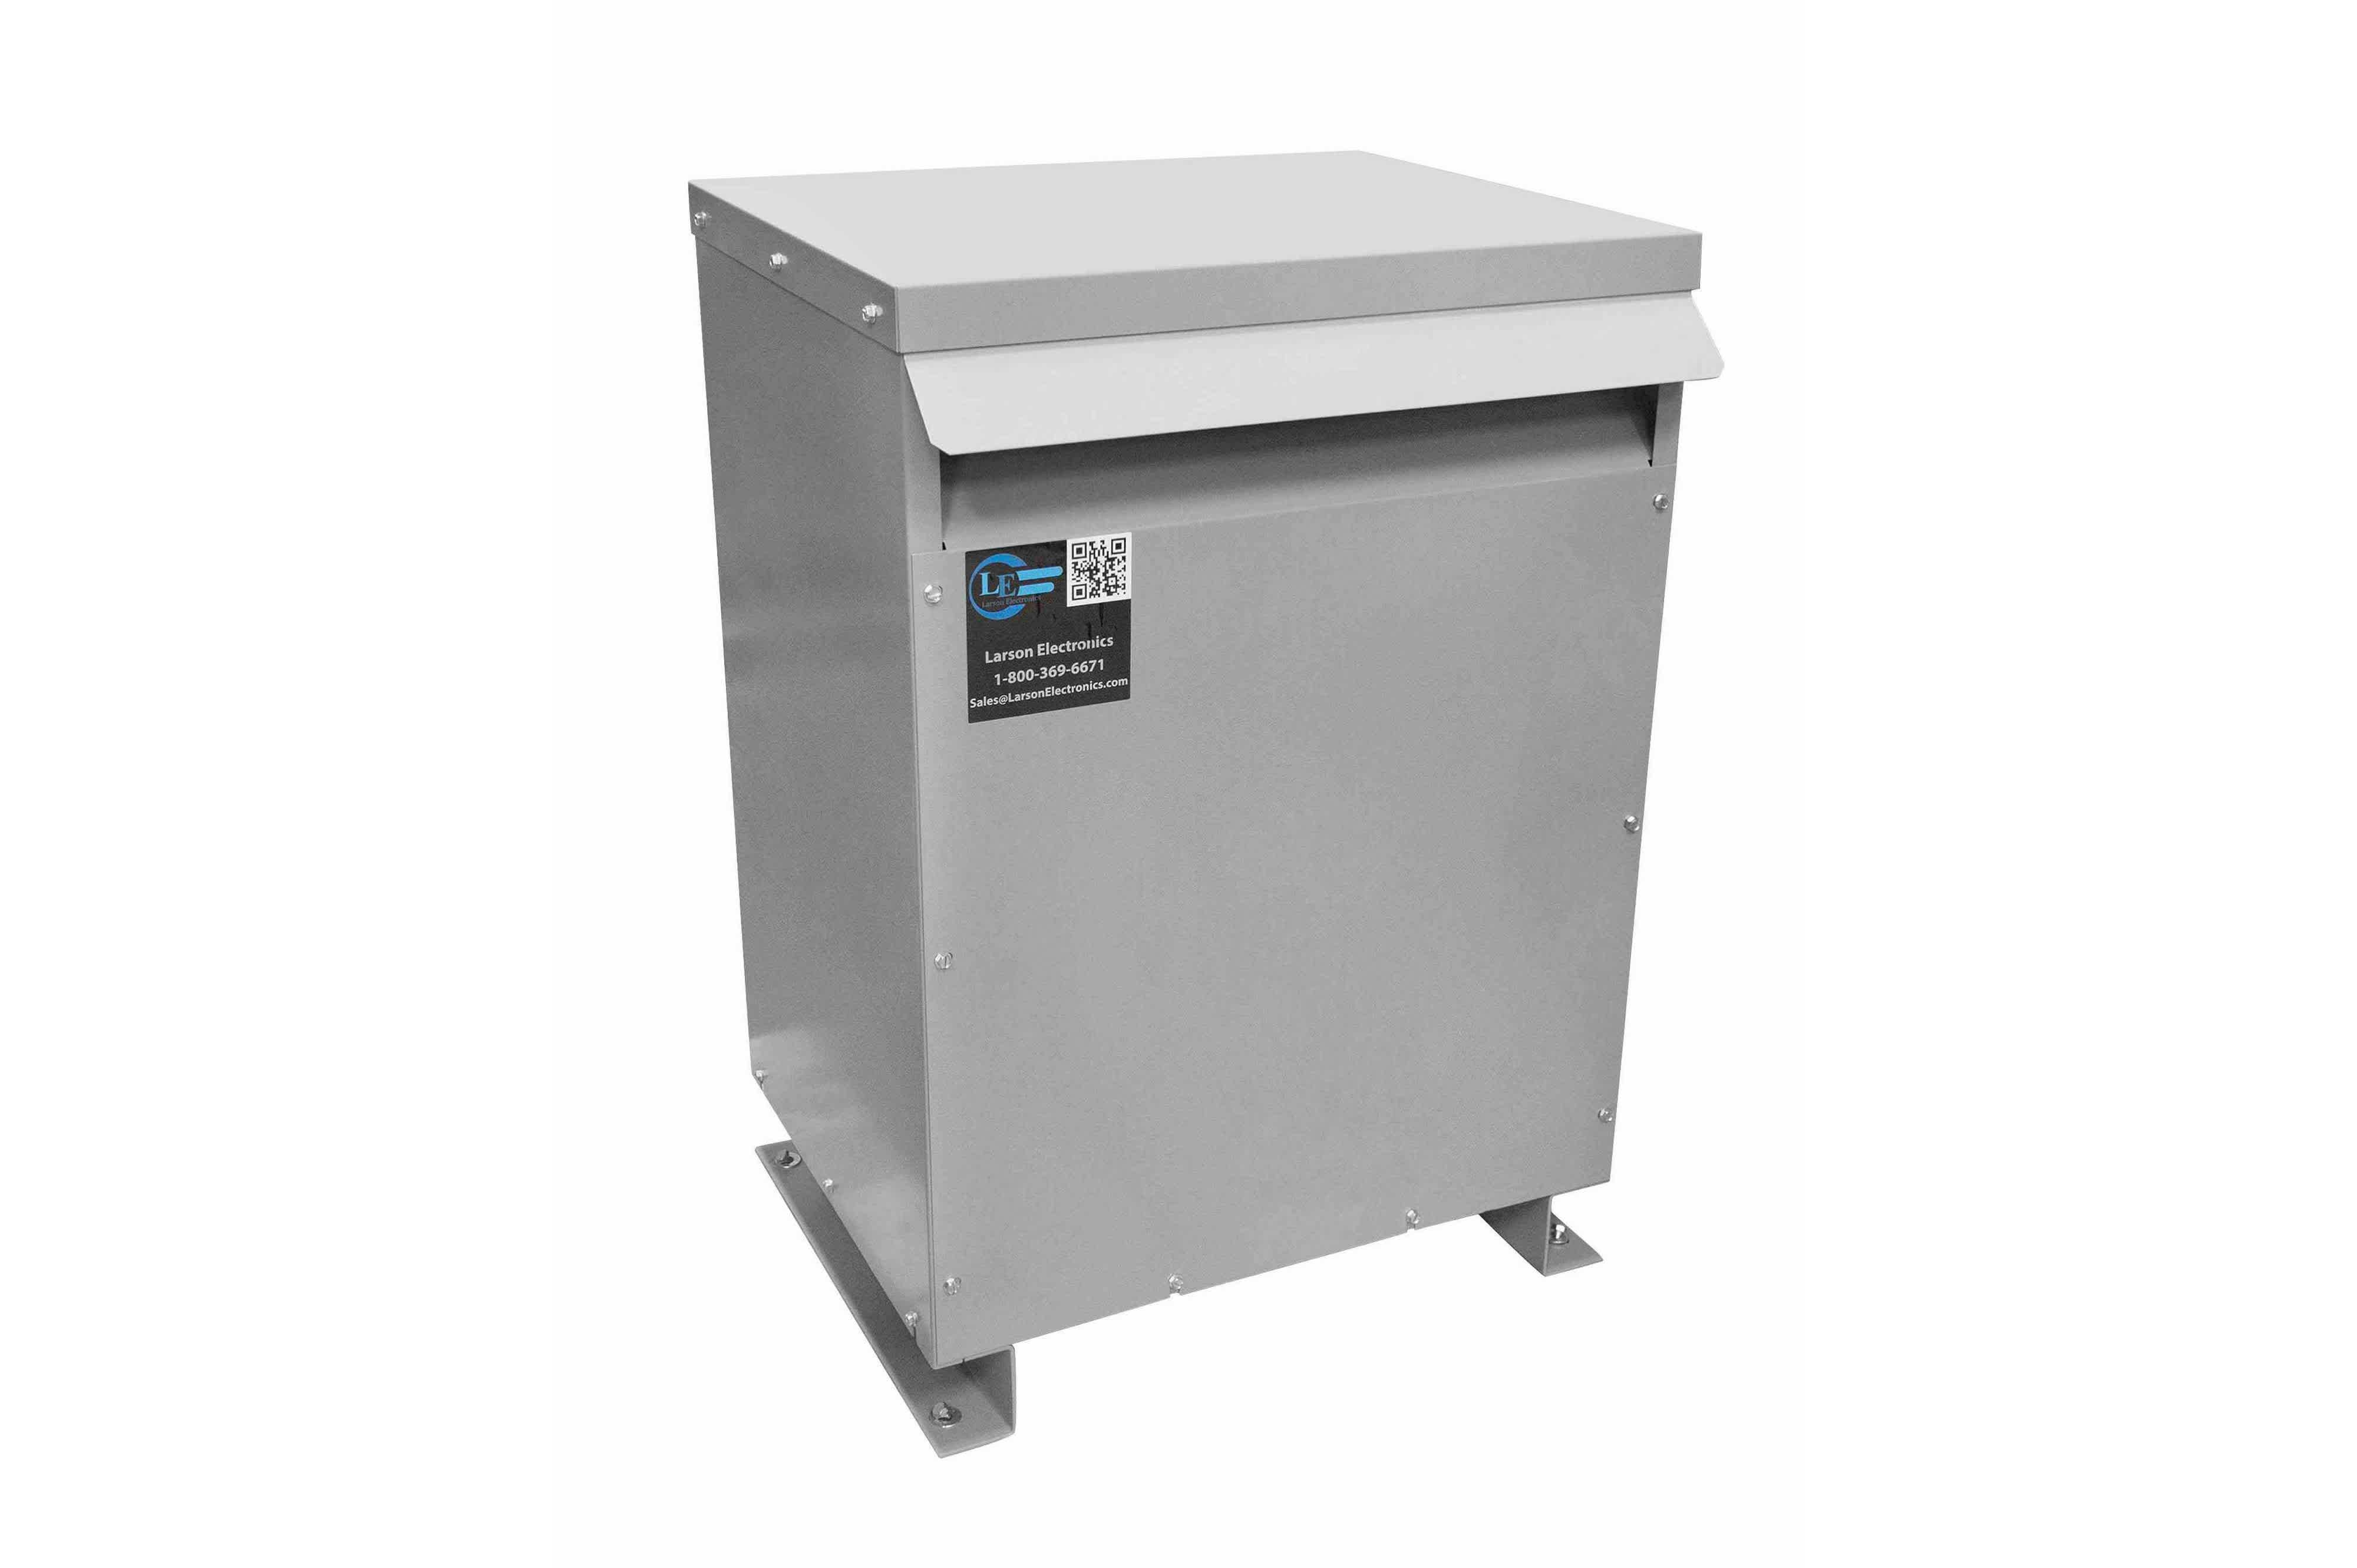 55 kVA 3PH Isolation Transformer, 415V Delta Primary, 240 Delta Secondary, N3R, Ventilated, 60 Hz